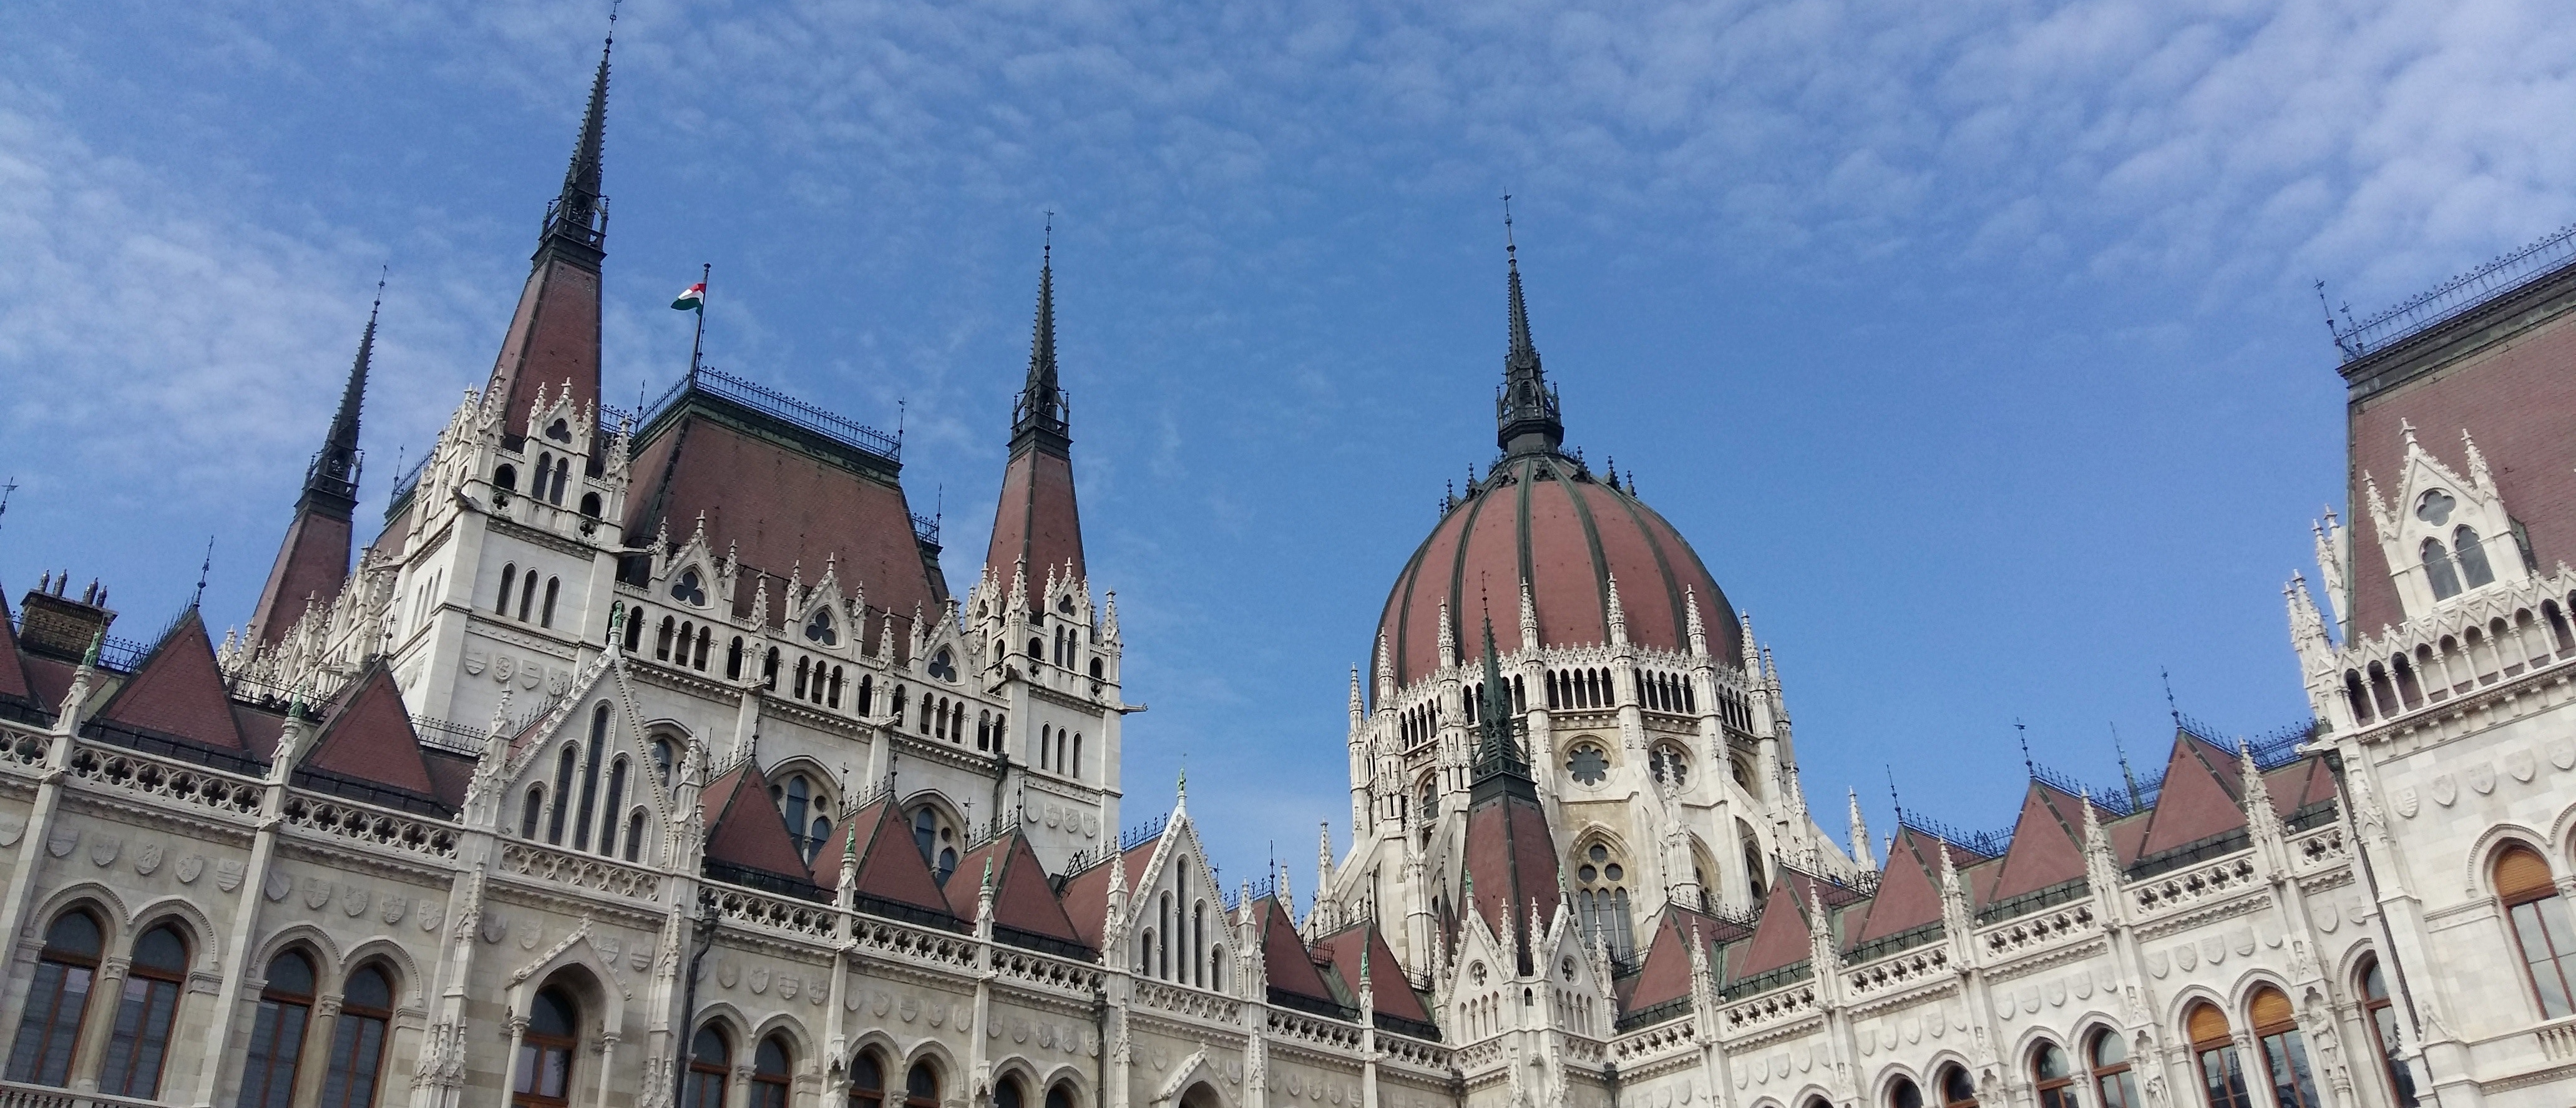 Gothic facade of the hungarian parlement by day